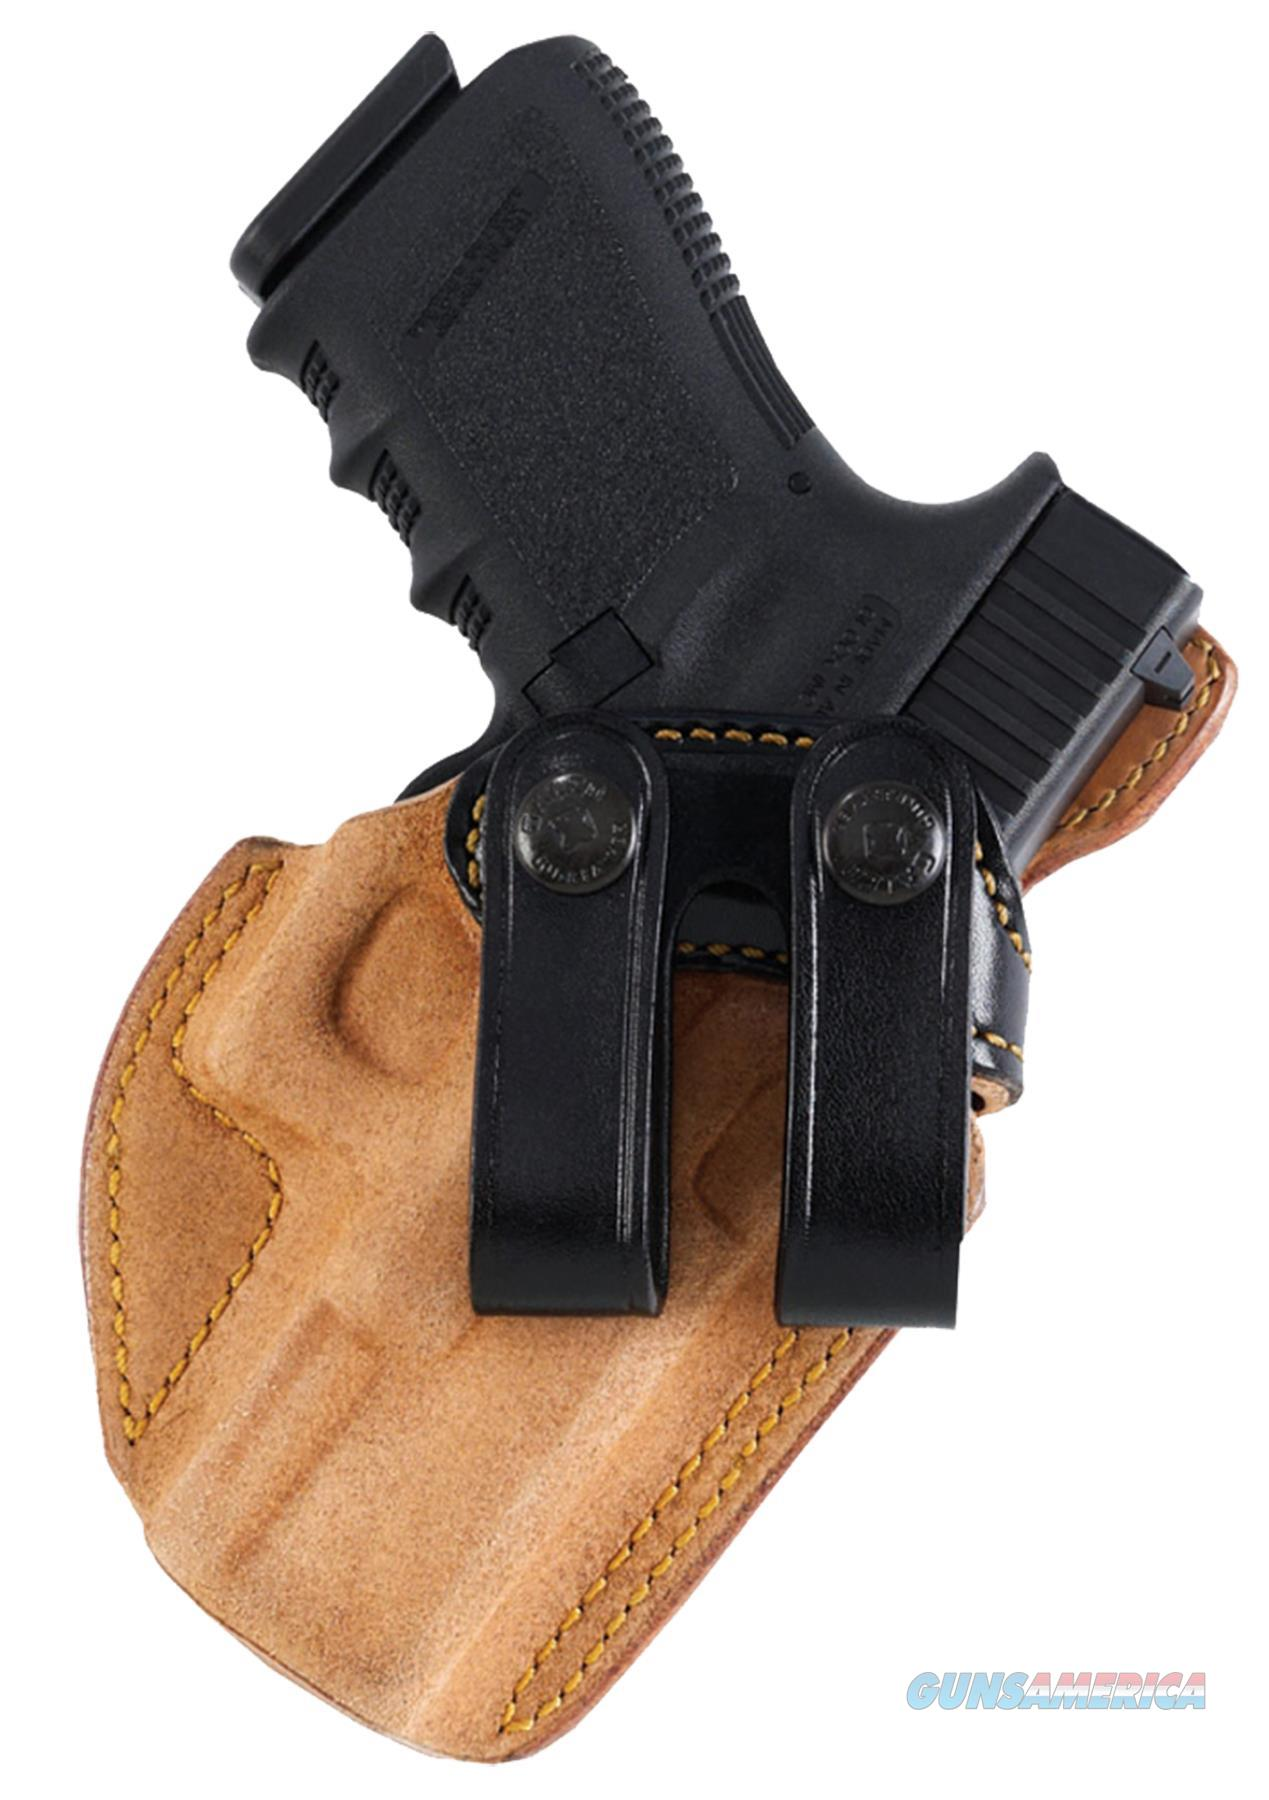 Galco Rg158b Royal Guard Inside The Pants  S&W J Frame Horsehide/Leather Black RG158B  Non-Guns > Holsters and Gunleather > Other